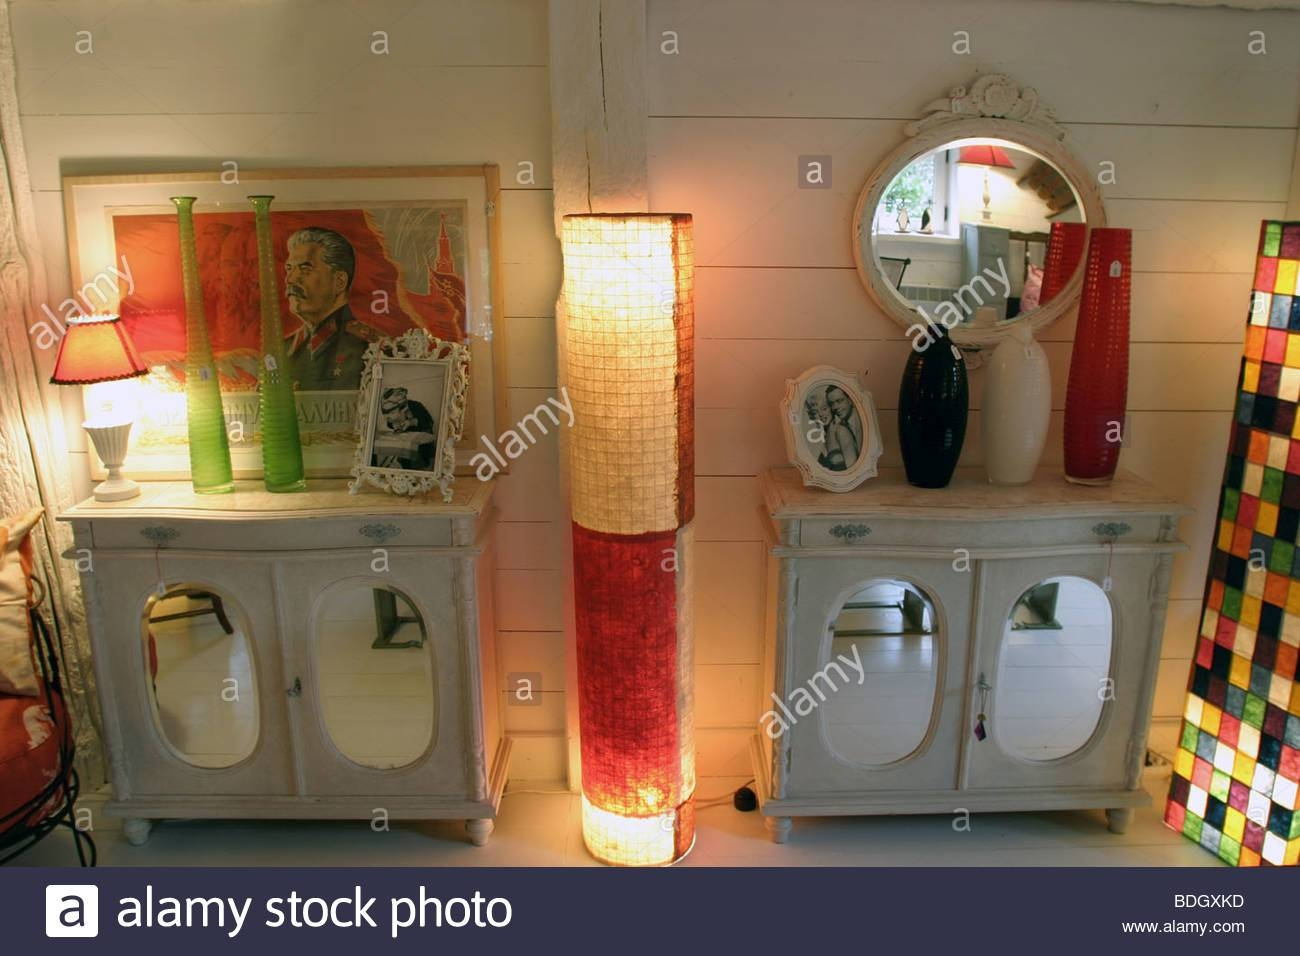 Sideboards Lamps Stock Photo, Royalty Free Image: 25573057 – Alamy Within Sideboards With Lamps (View 12 of 30)